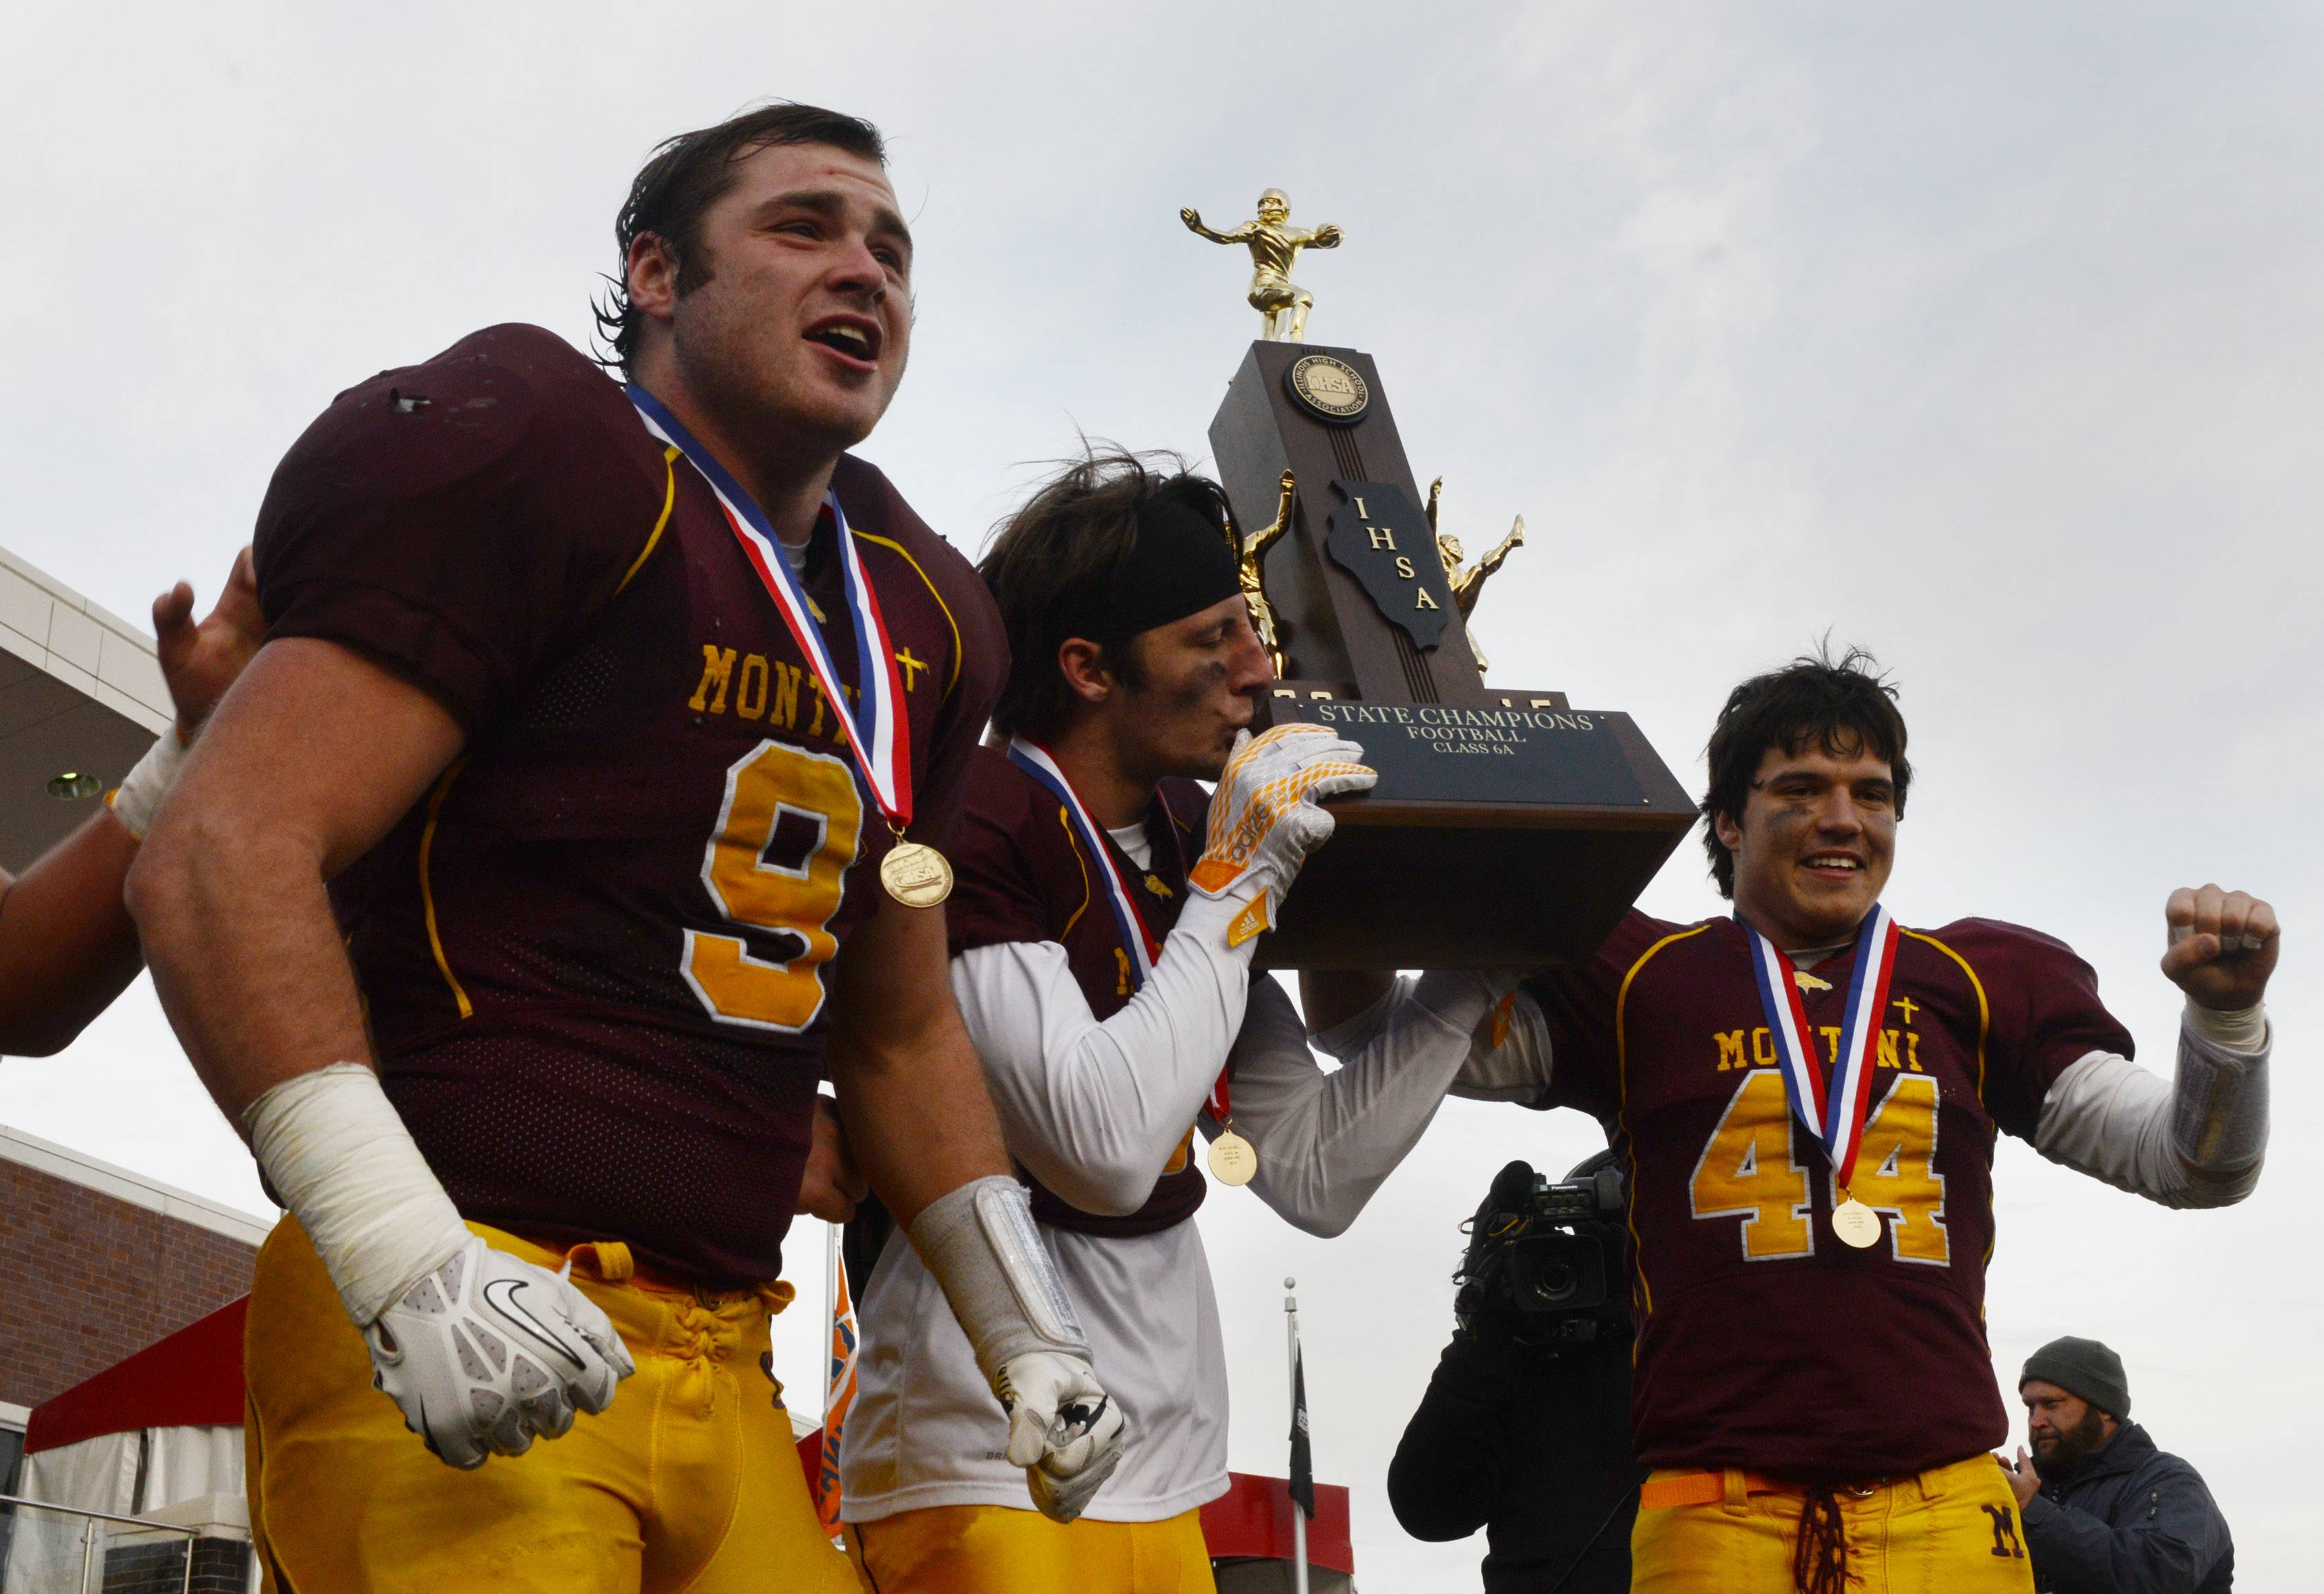 Left to right, Montini's John Embrey, Tyler Millikan and Luke Sheppard celebrate with their team's trophy during the Class 6A football championship game at Northern Illinois University in DeKalb Saturday.